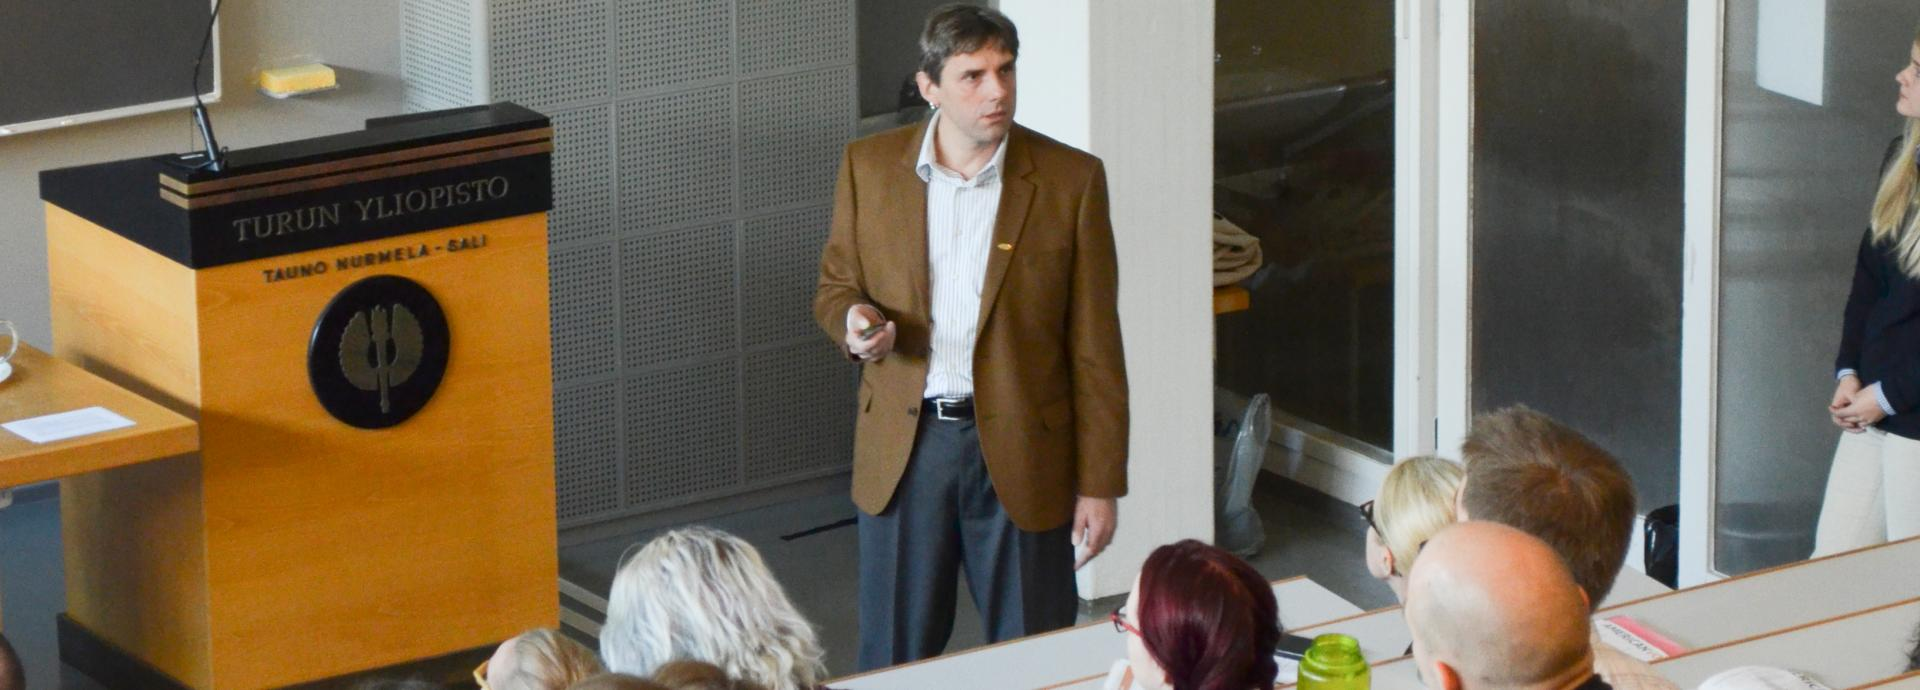 An american scholar giving a lecture at the University of Turku